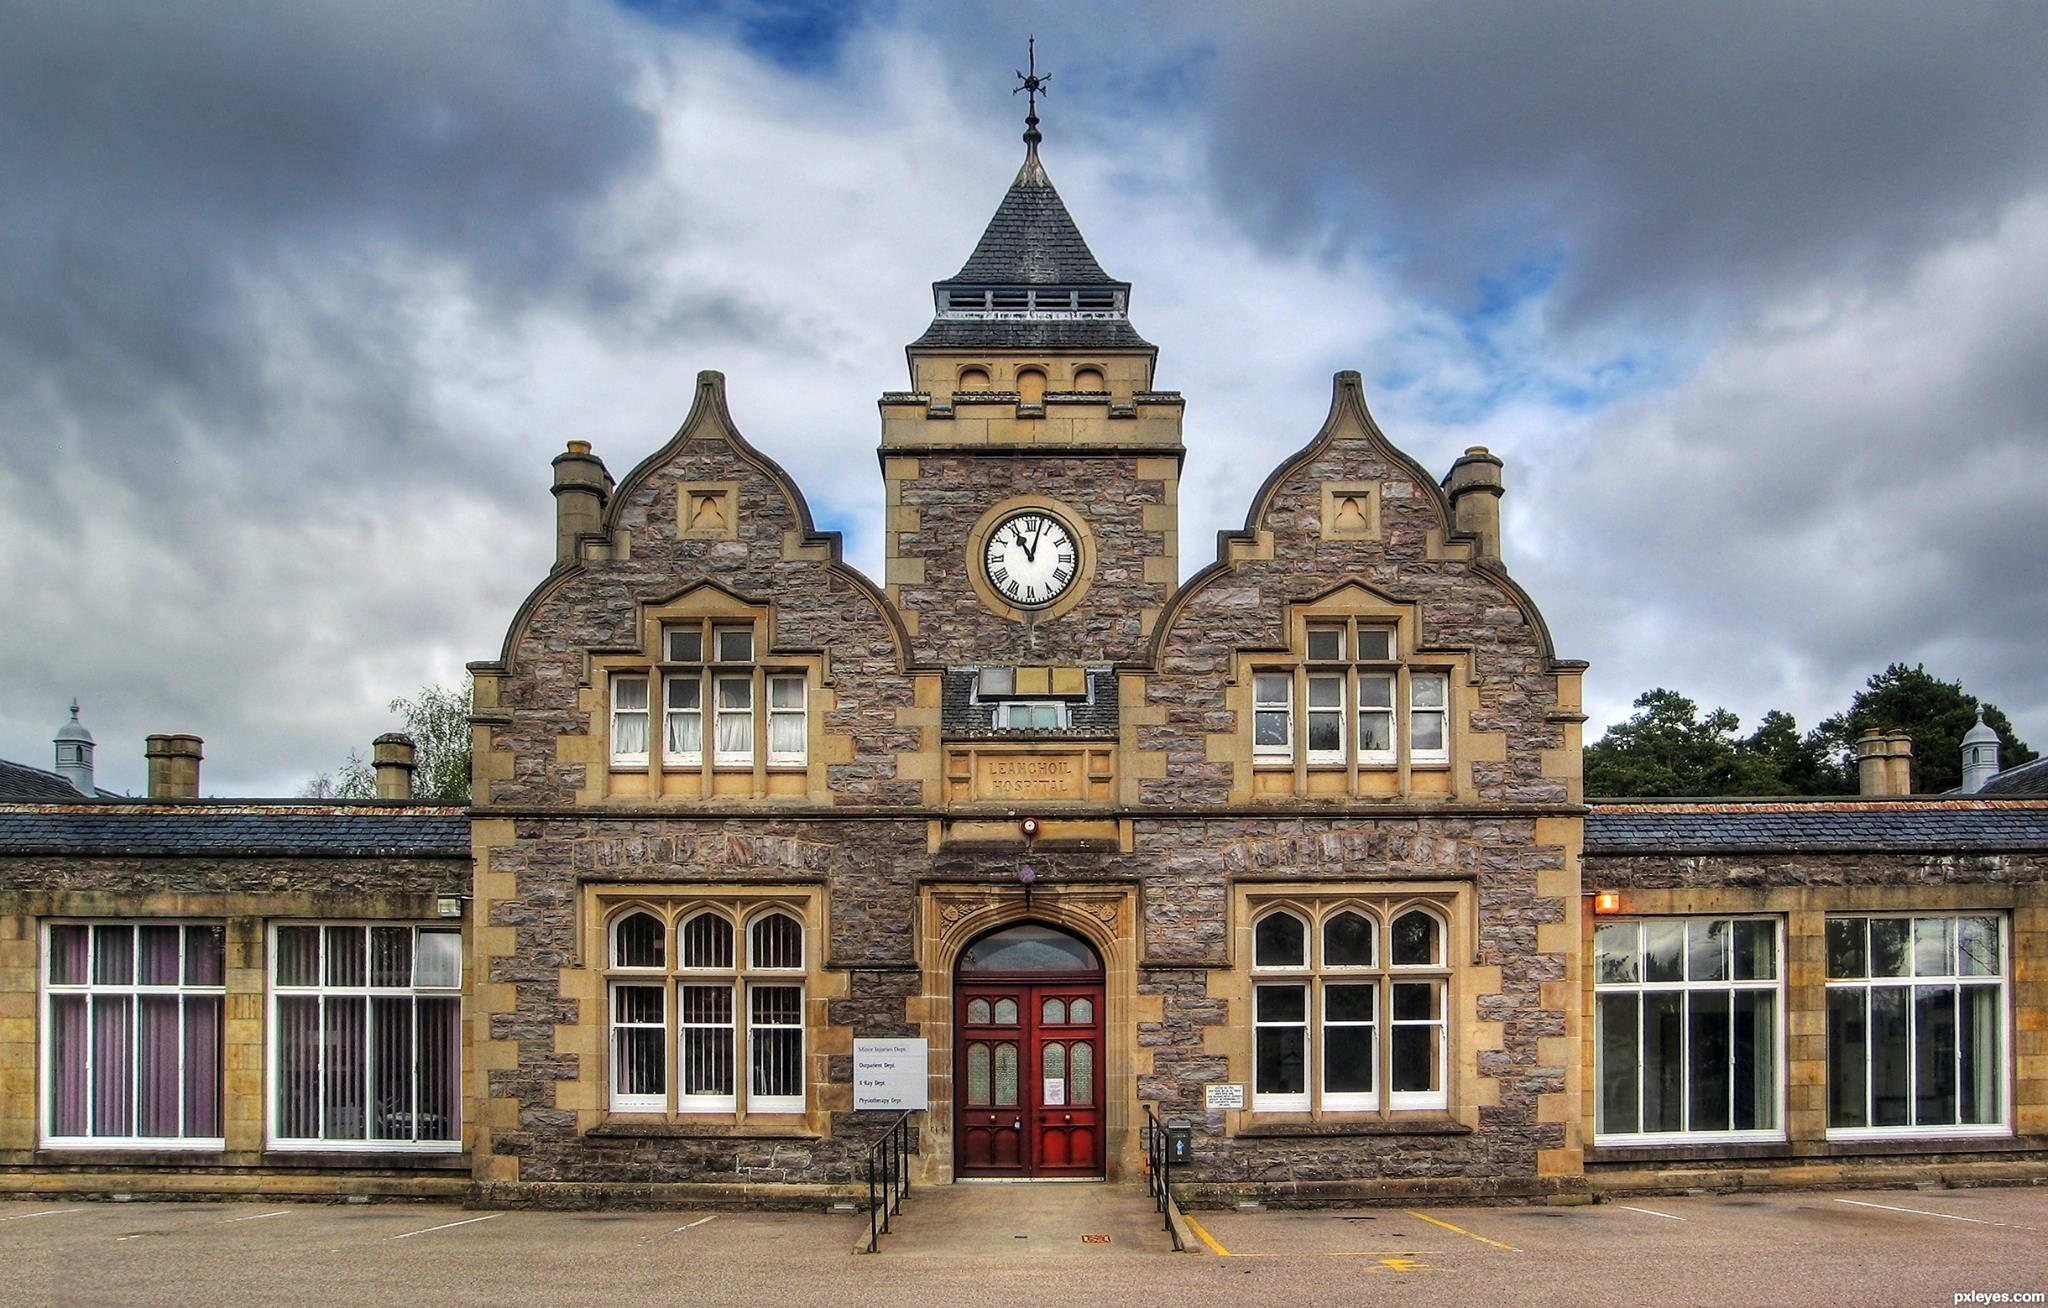 Leanchoil Hospital in Forres. By Jason Hedges.